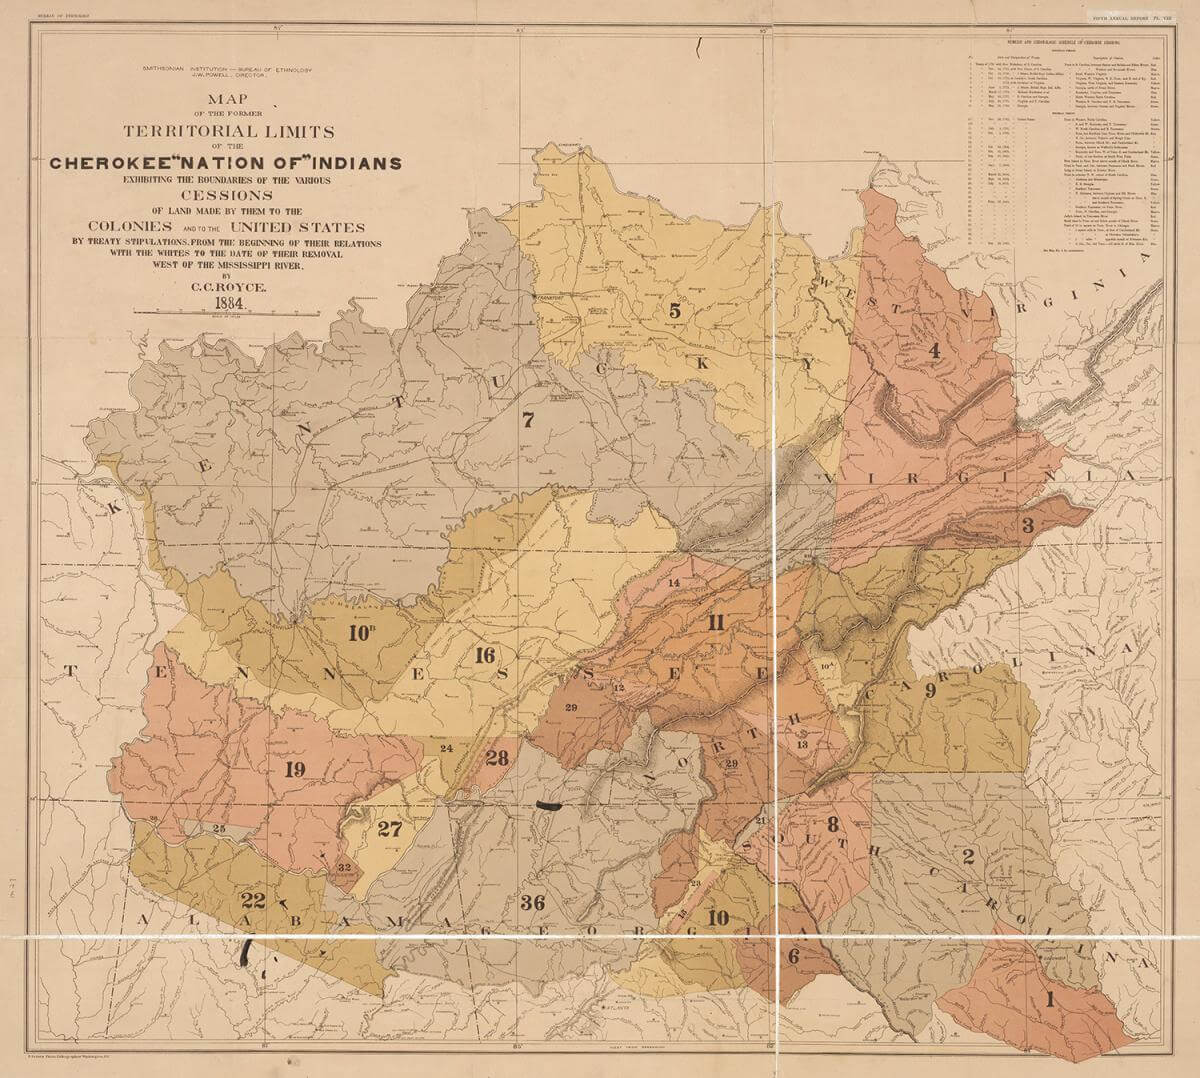 "Map of the former territorial limits of the Cherokee ""Nation of"" Indians, 1884. Map by Charles C. Royce. Courtesy of the North Carolina Collection, Smithsonian Institution, Bureau of Ethnology. Map is in public domain."